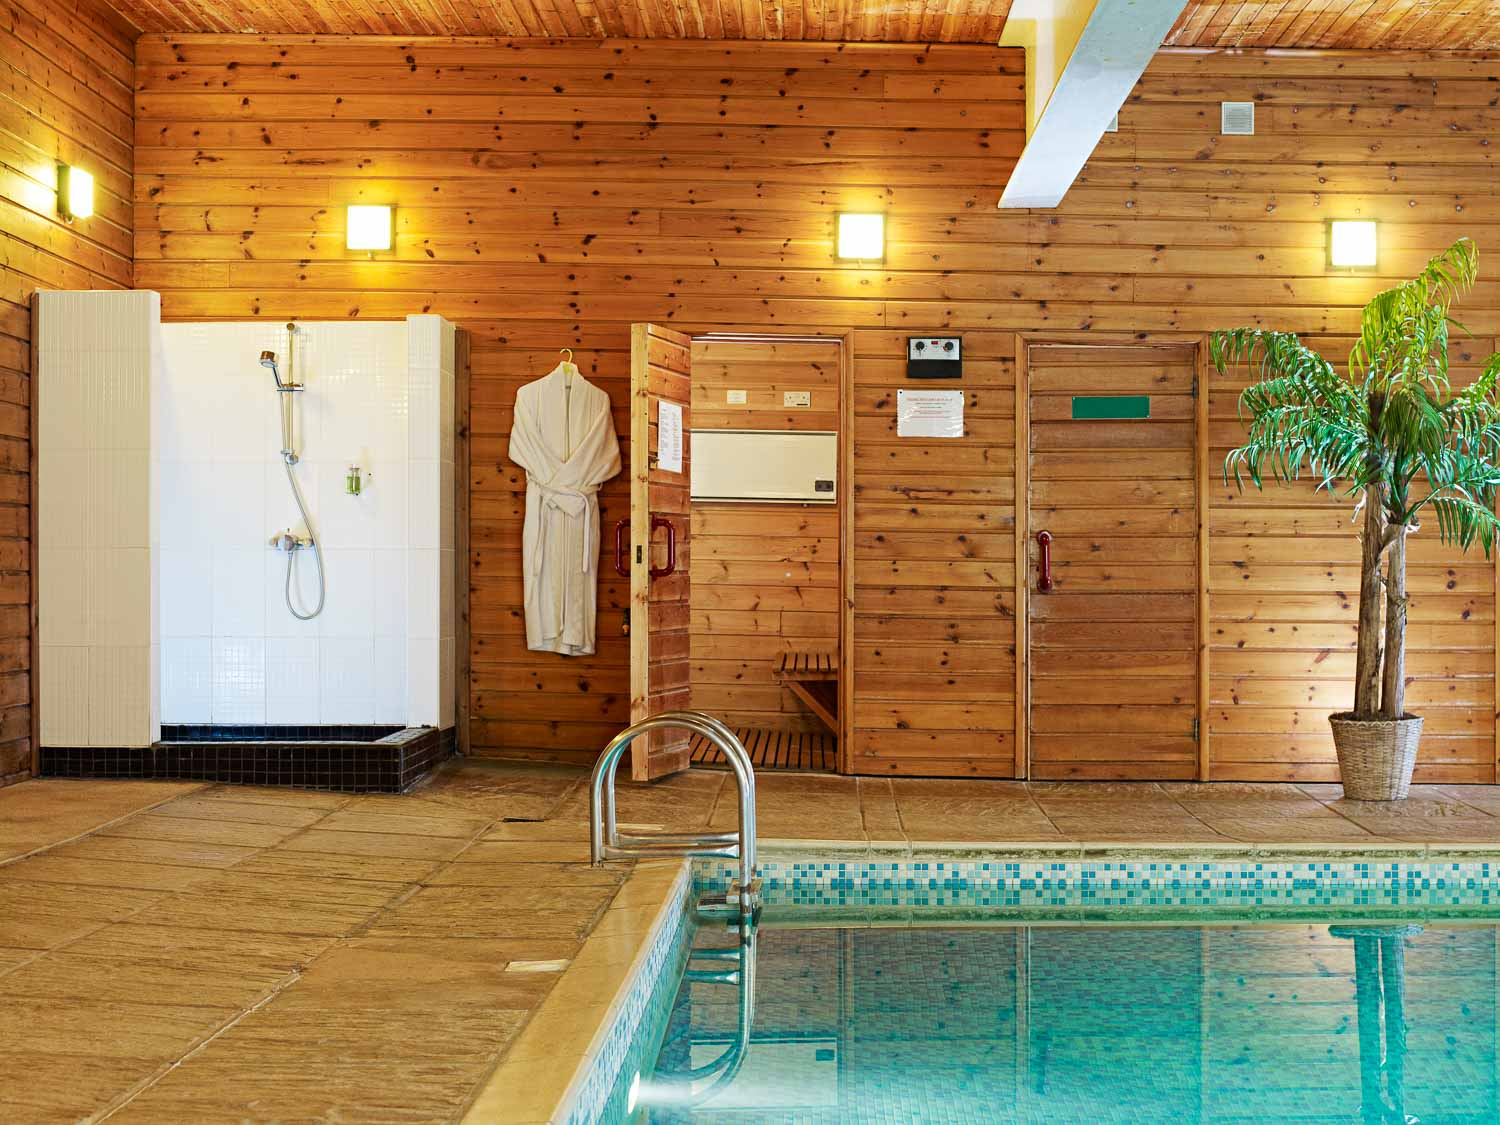 Flear Farm Cottages Indoor Pool, shower and changing room